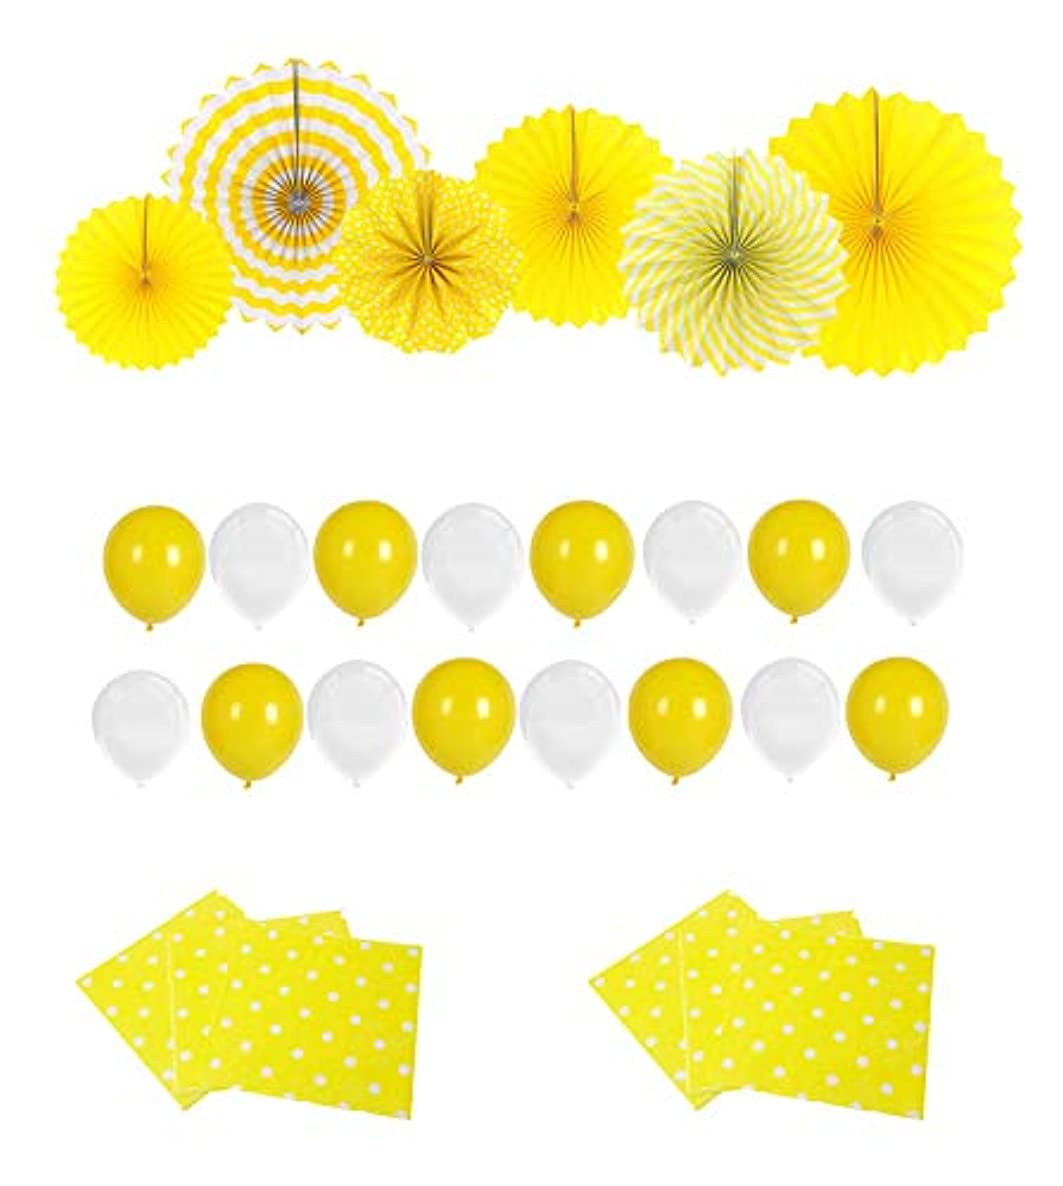 Sunshine Yellow Paper Fans Baby Shower Decoration - 6 Party Hanging Fans & 20 White and Yellow Balloons & 20 Count Yellow Polka Dot Paper Napkins for Wedding, Bridal Shower, Kids Birthday Party